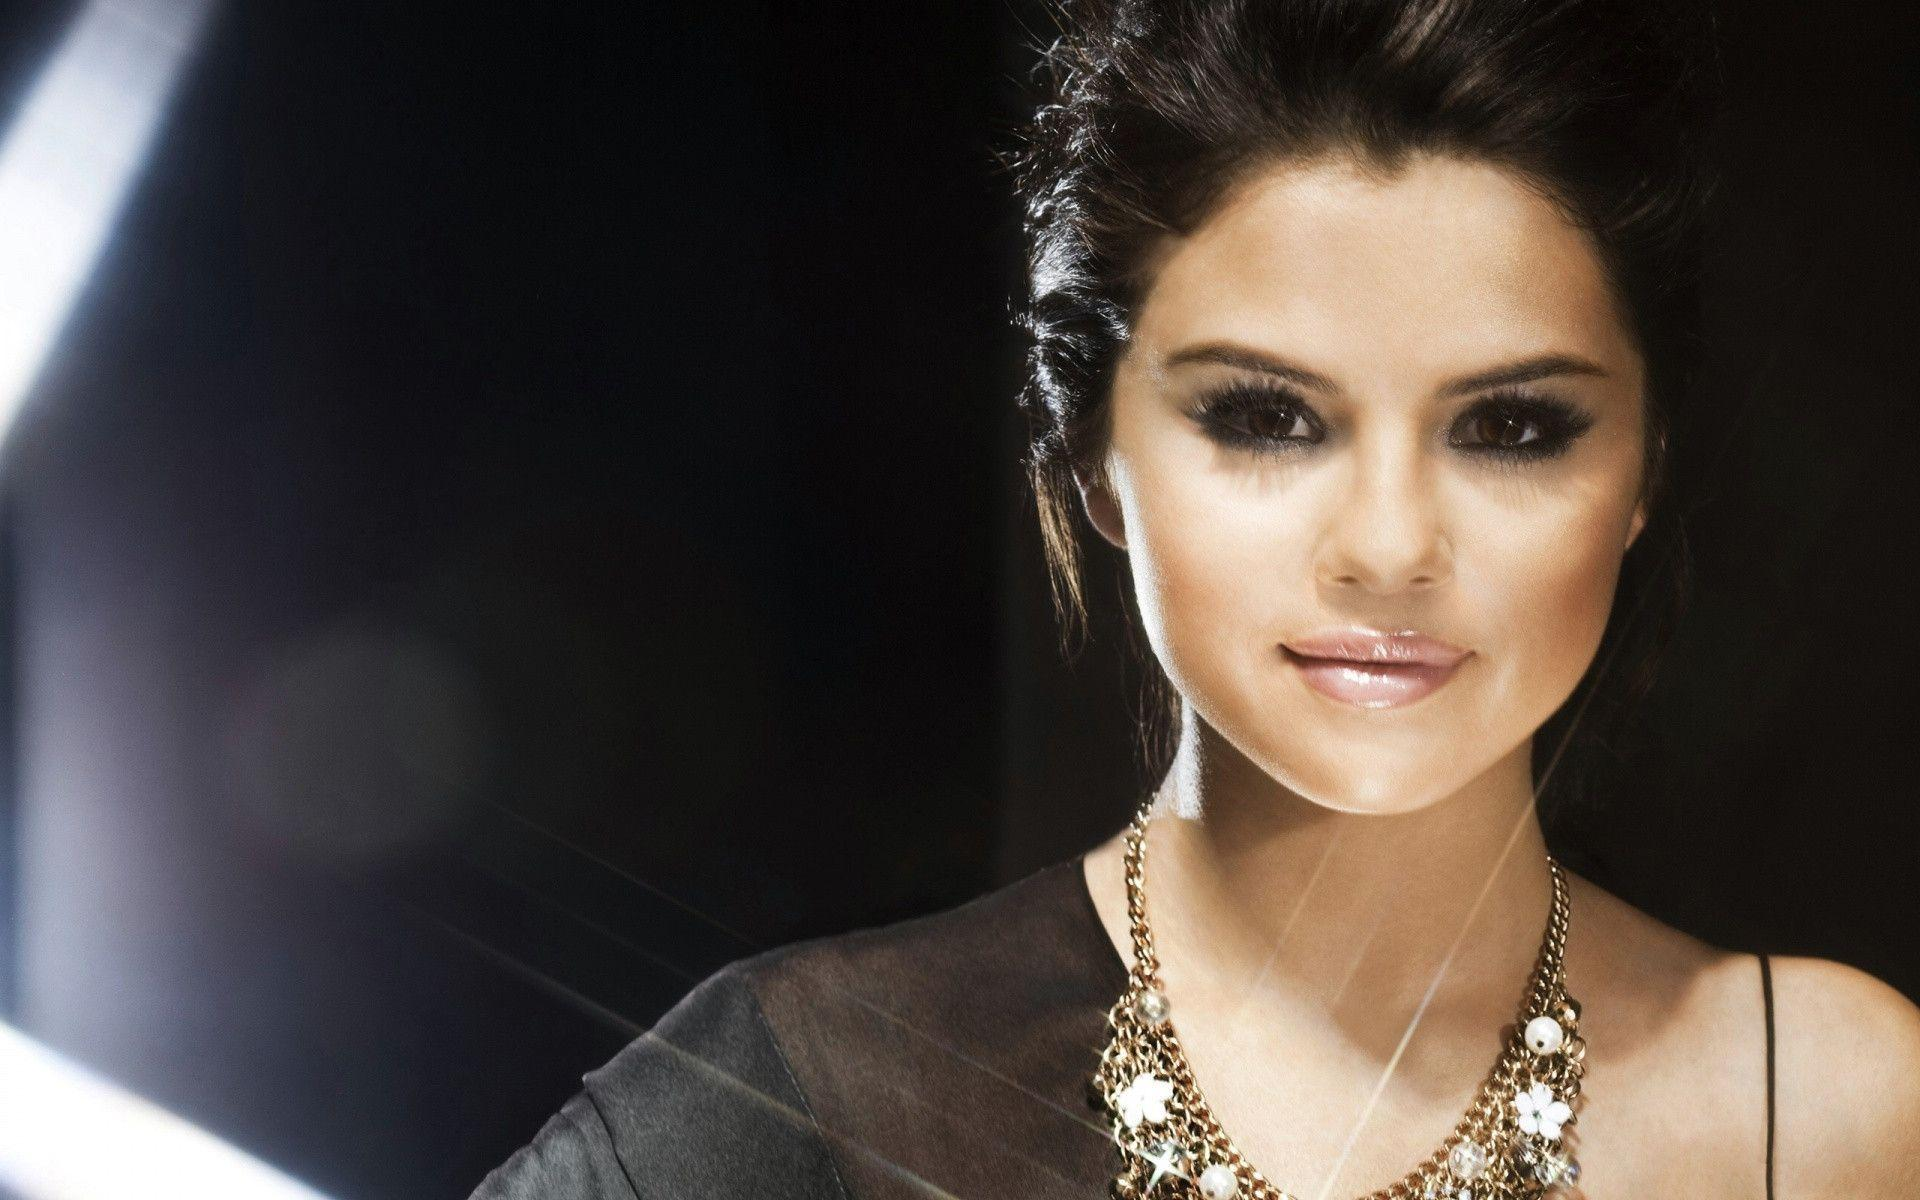 Selena Gomez 105 Wallpapers | HD Wallpapers